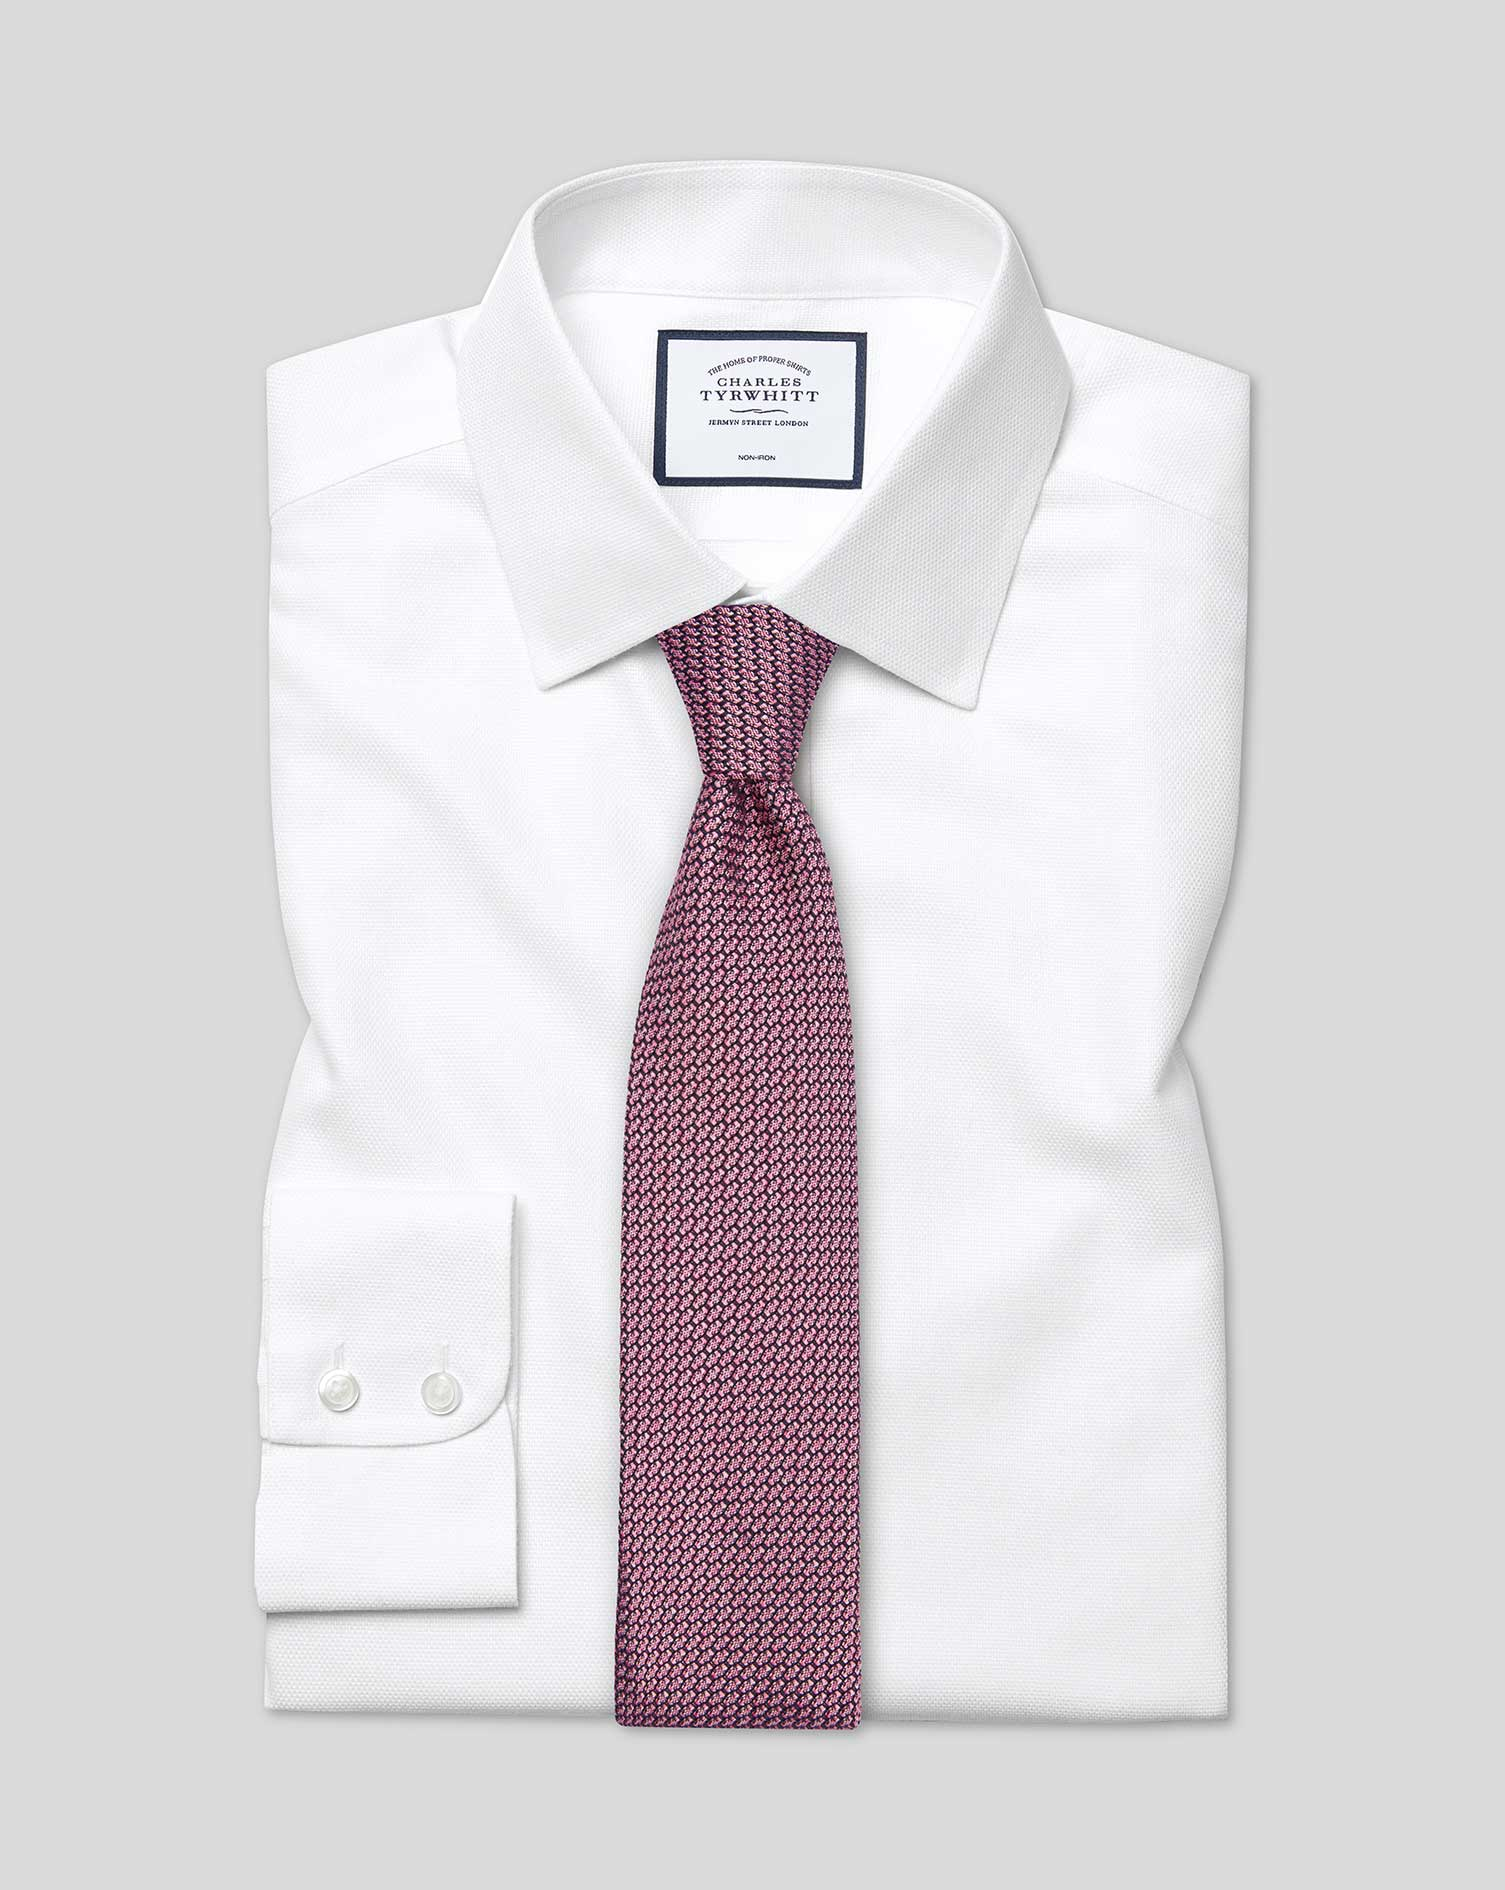 Classic Fit Non-Iron Dash Weave White Cotton Formal Shirt Double Cuff Size 17/34 by Charles Tyrwhitt